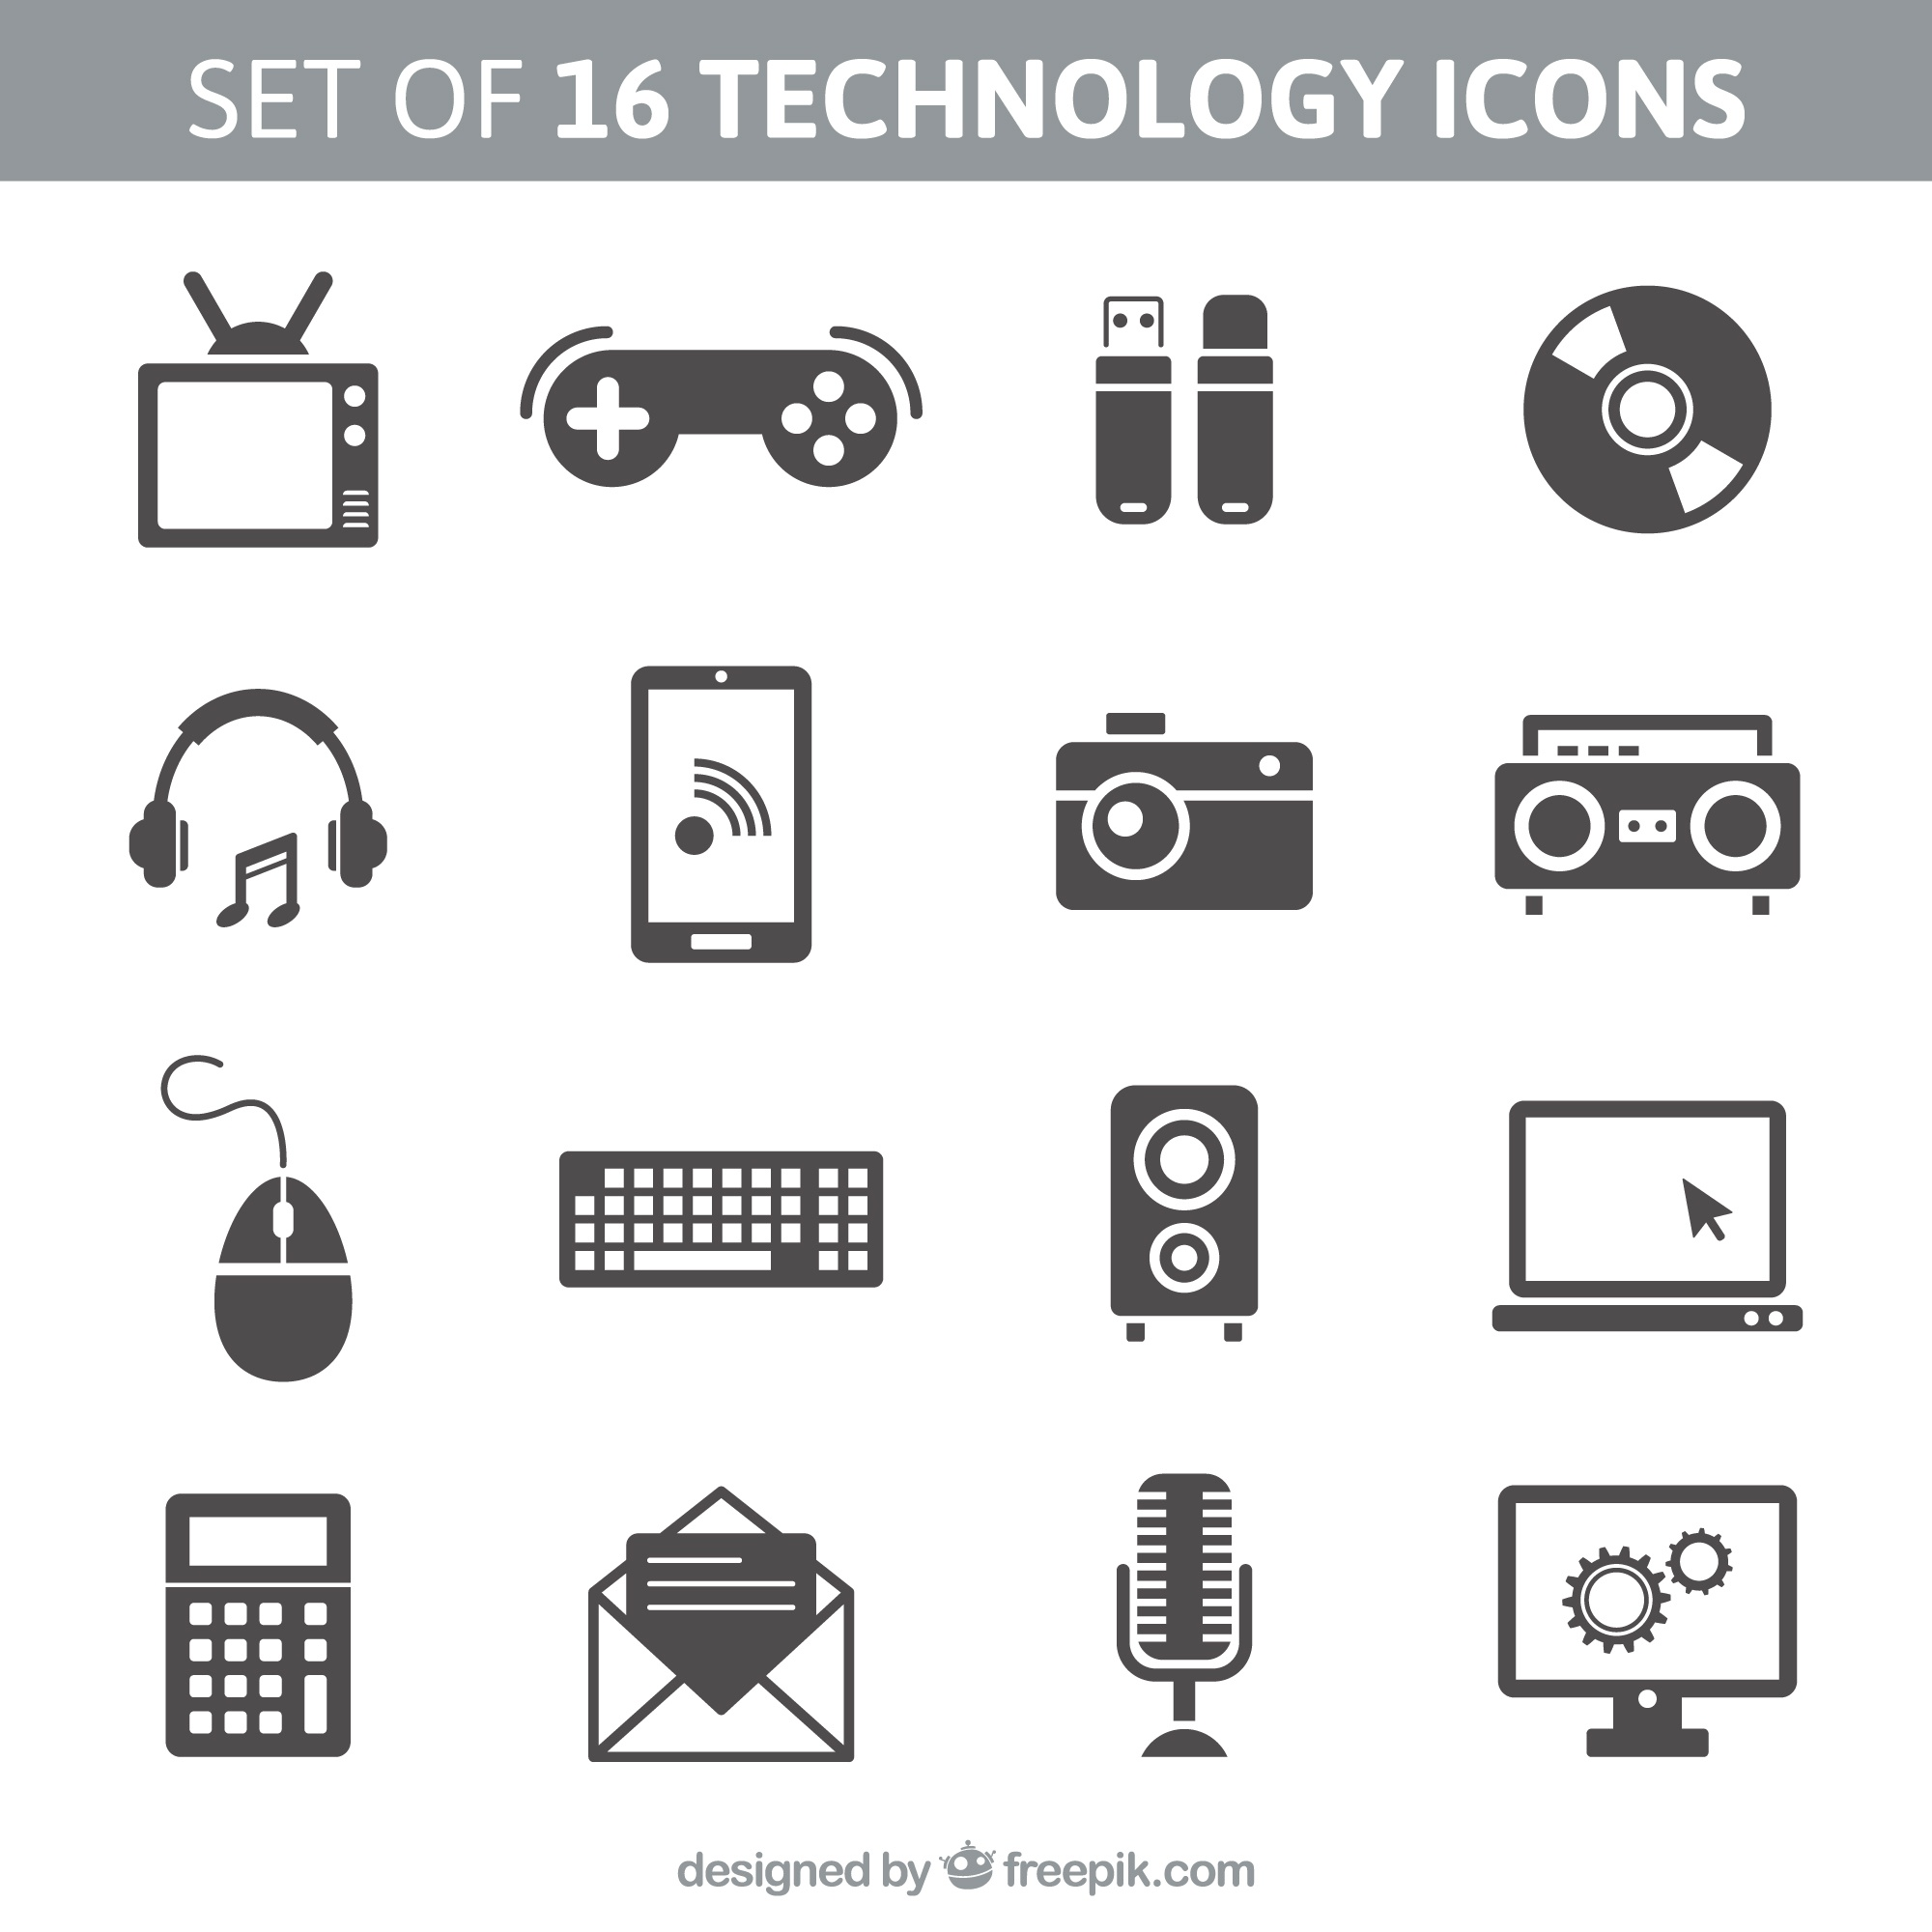 Set of 16 technology icons